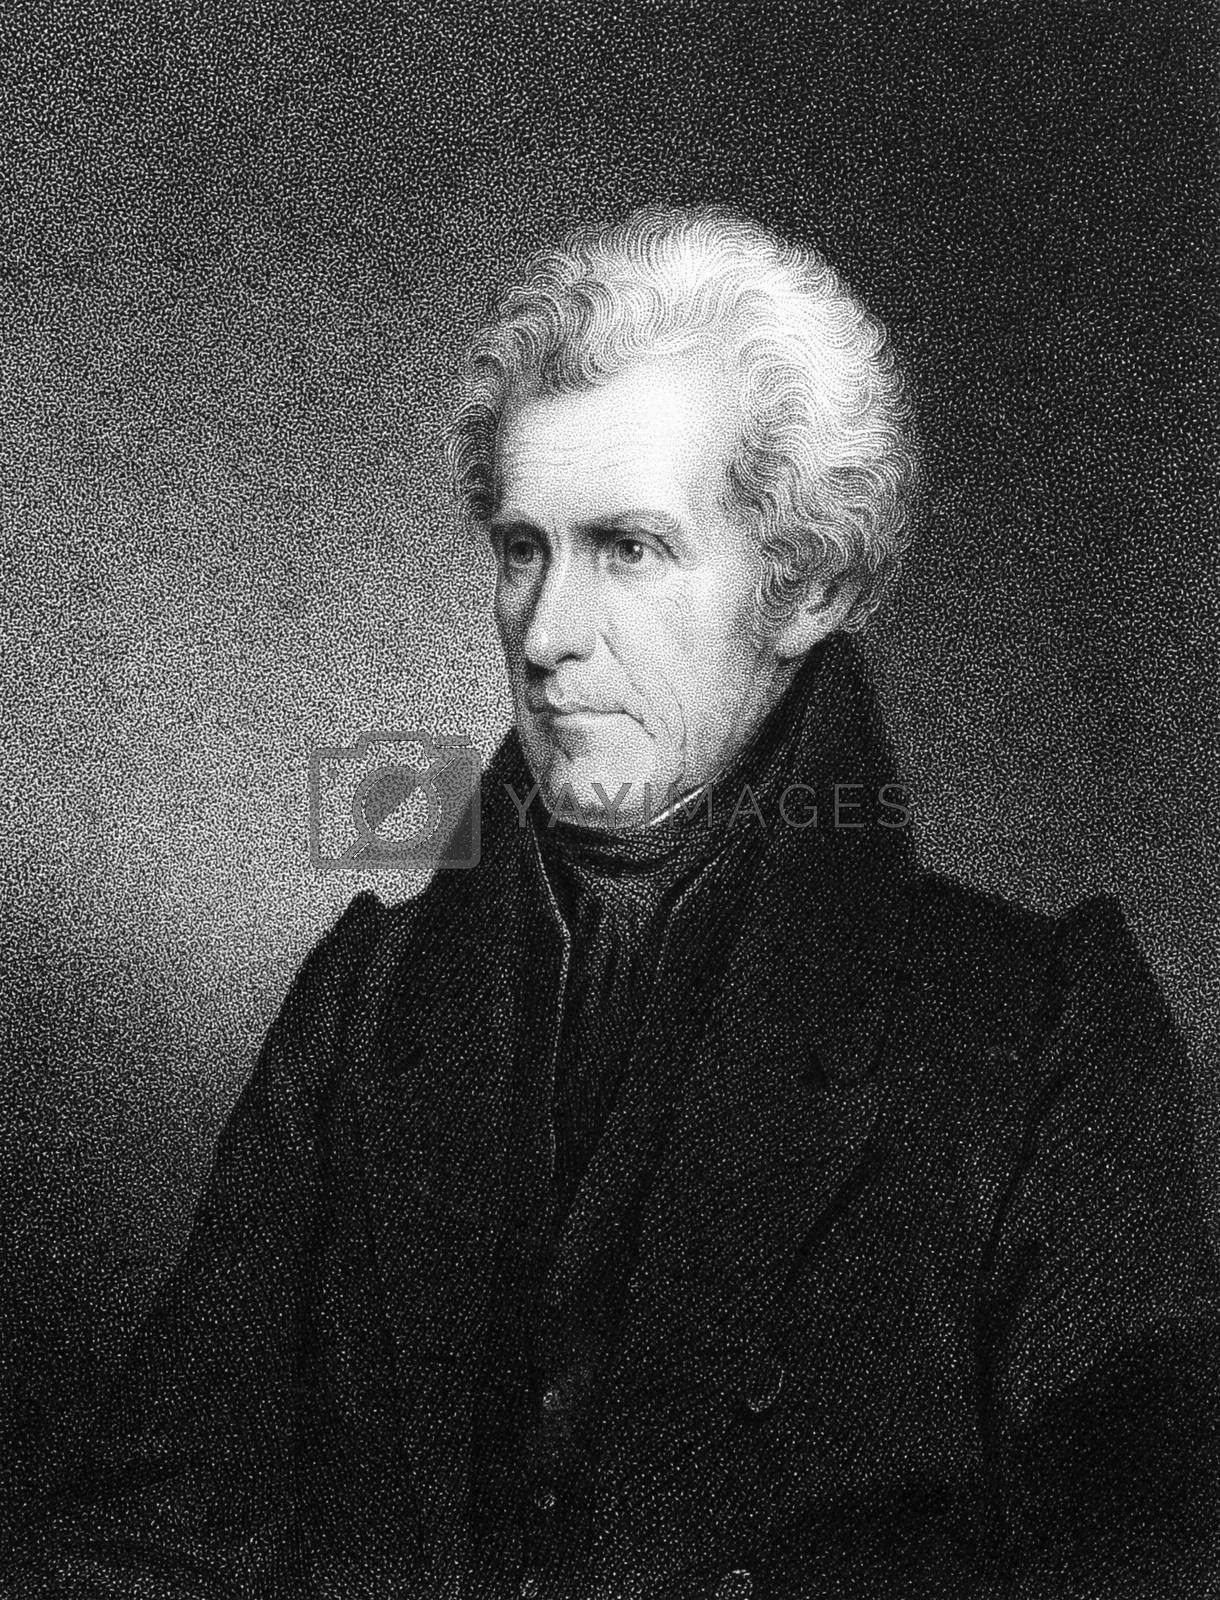 Andrew Jackson (1767-1845) on engraving from 1834. 7th President of the United States during 1829-1837. Engraved by J.B Longacre and published in ''National Portrait Gallery of Distinguished Americans'',USA,1834.